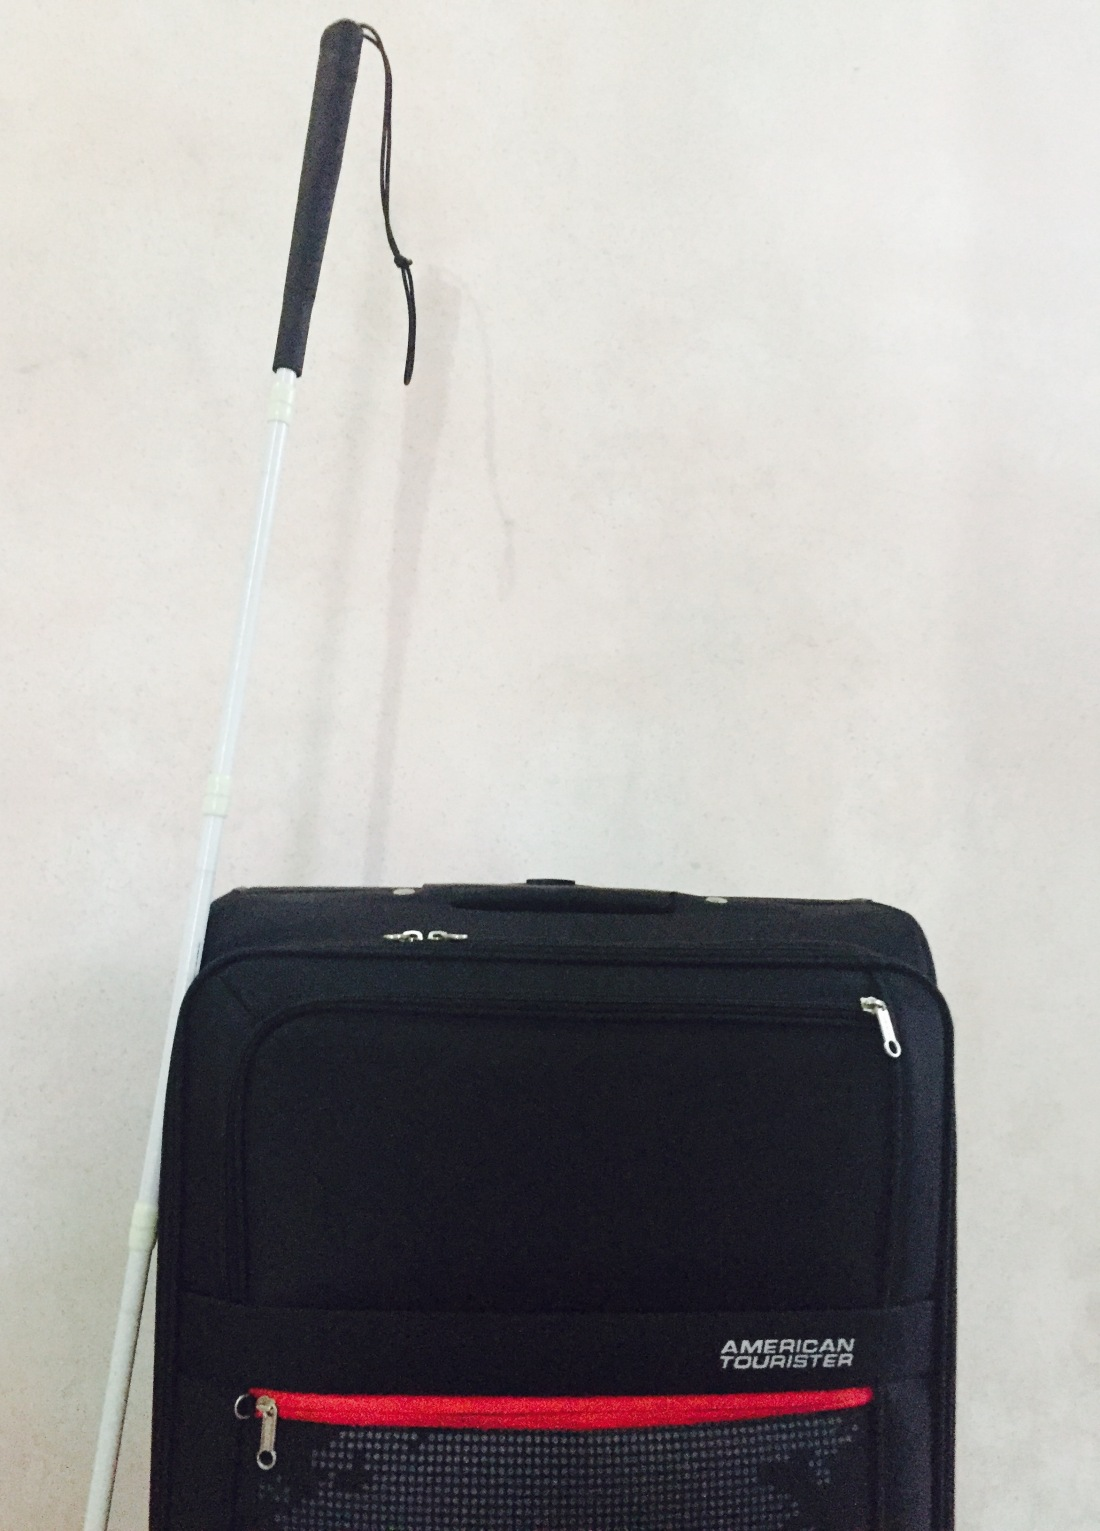 This image contains: White Cane and Black Luggage